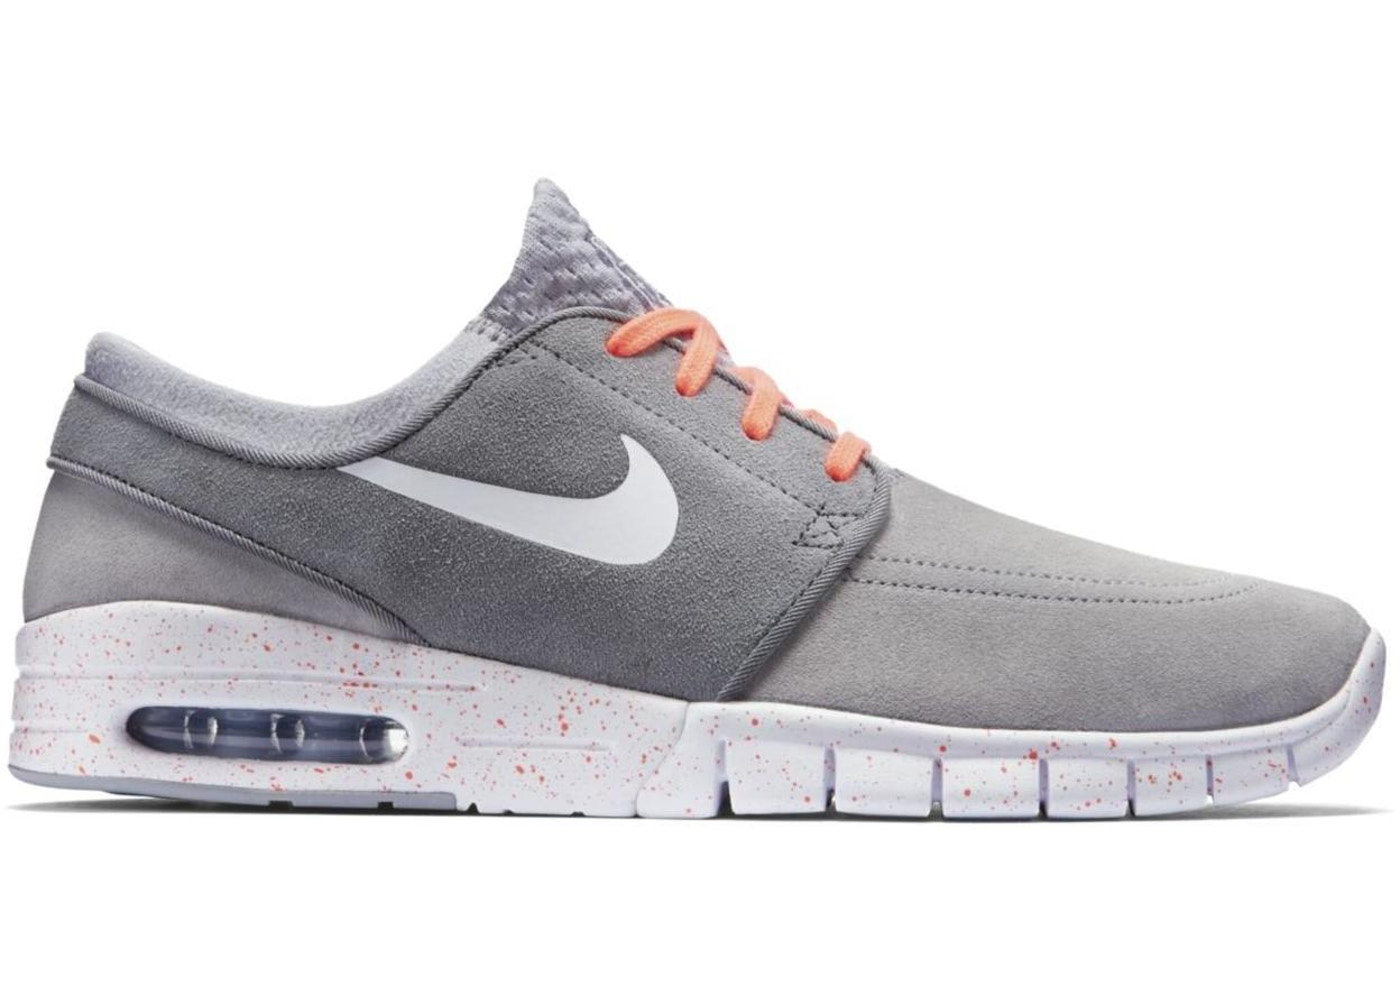 fee1e3befc Sell. or Ask. Size: 12. View All Bids. Nike SB Stefan Janoski Max Leather  Wolf Grey